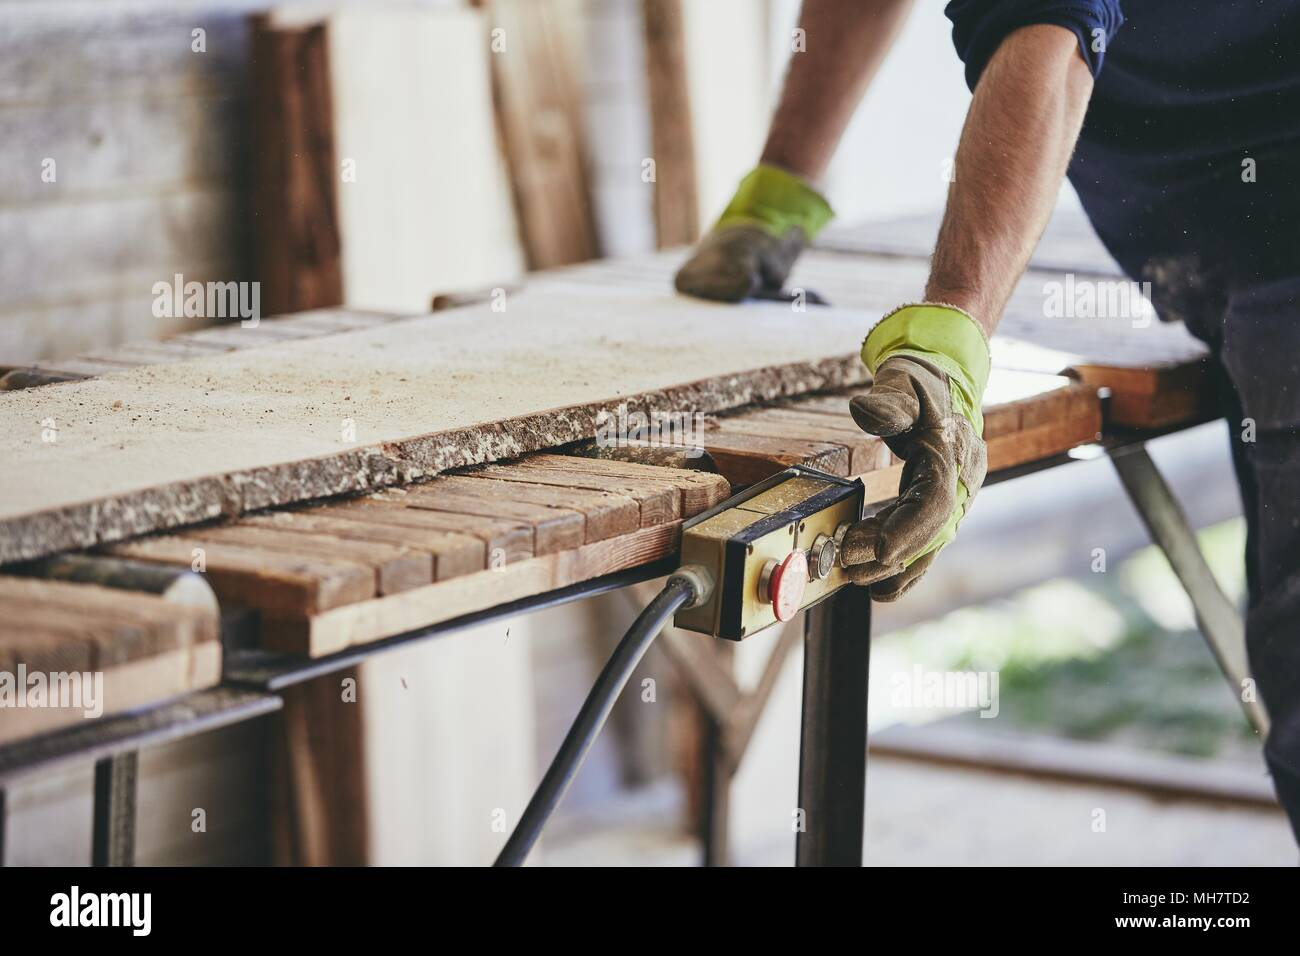 Man working in sawmill. Hands of the worker with protective glove. - Stock Image